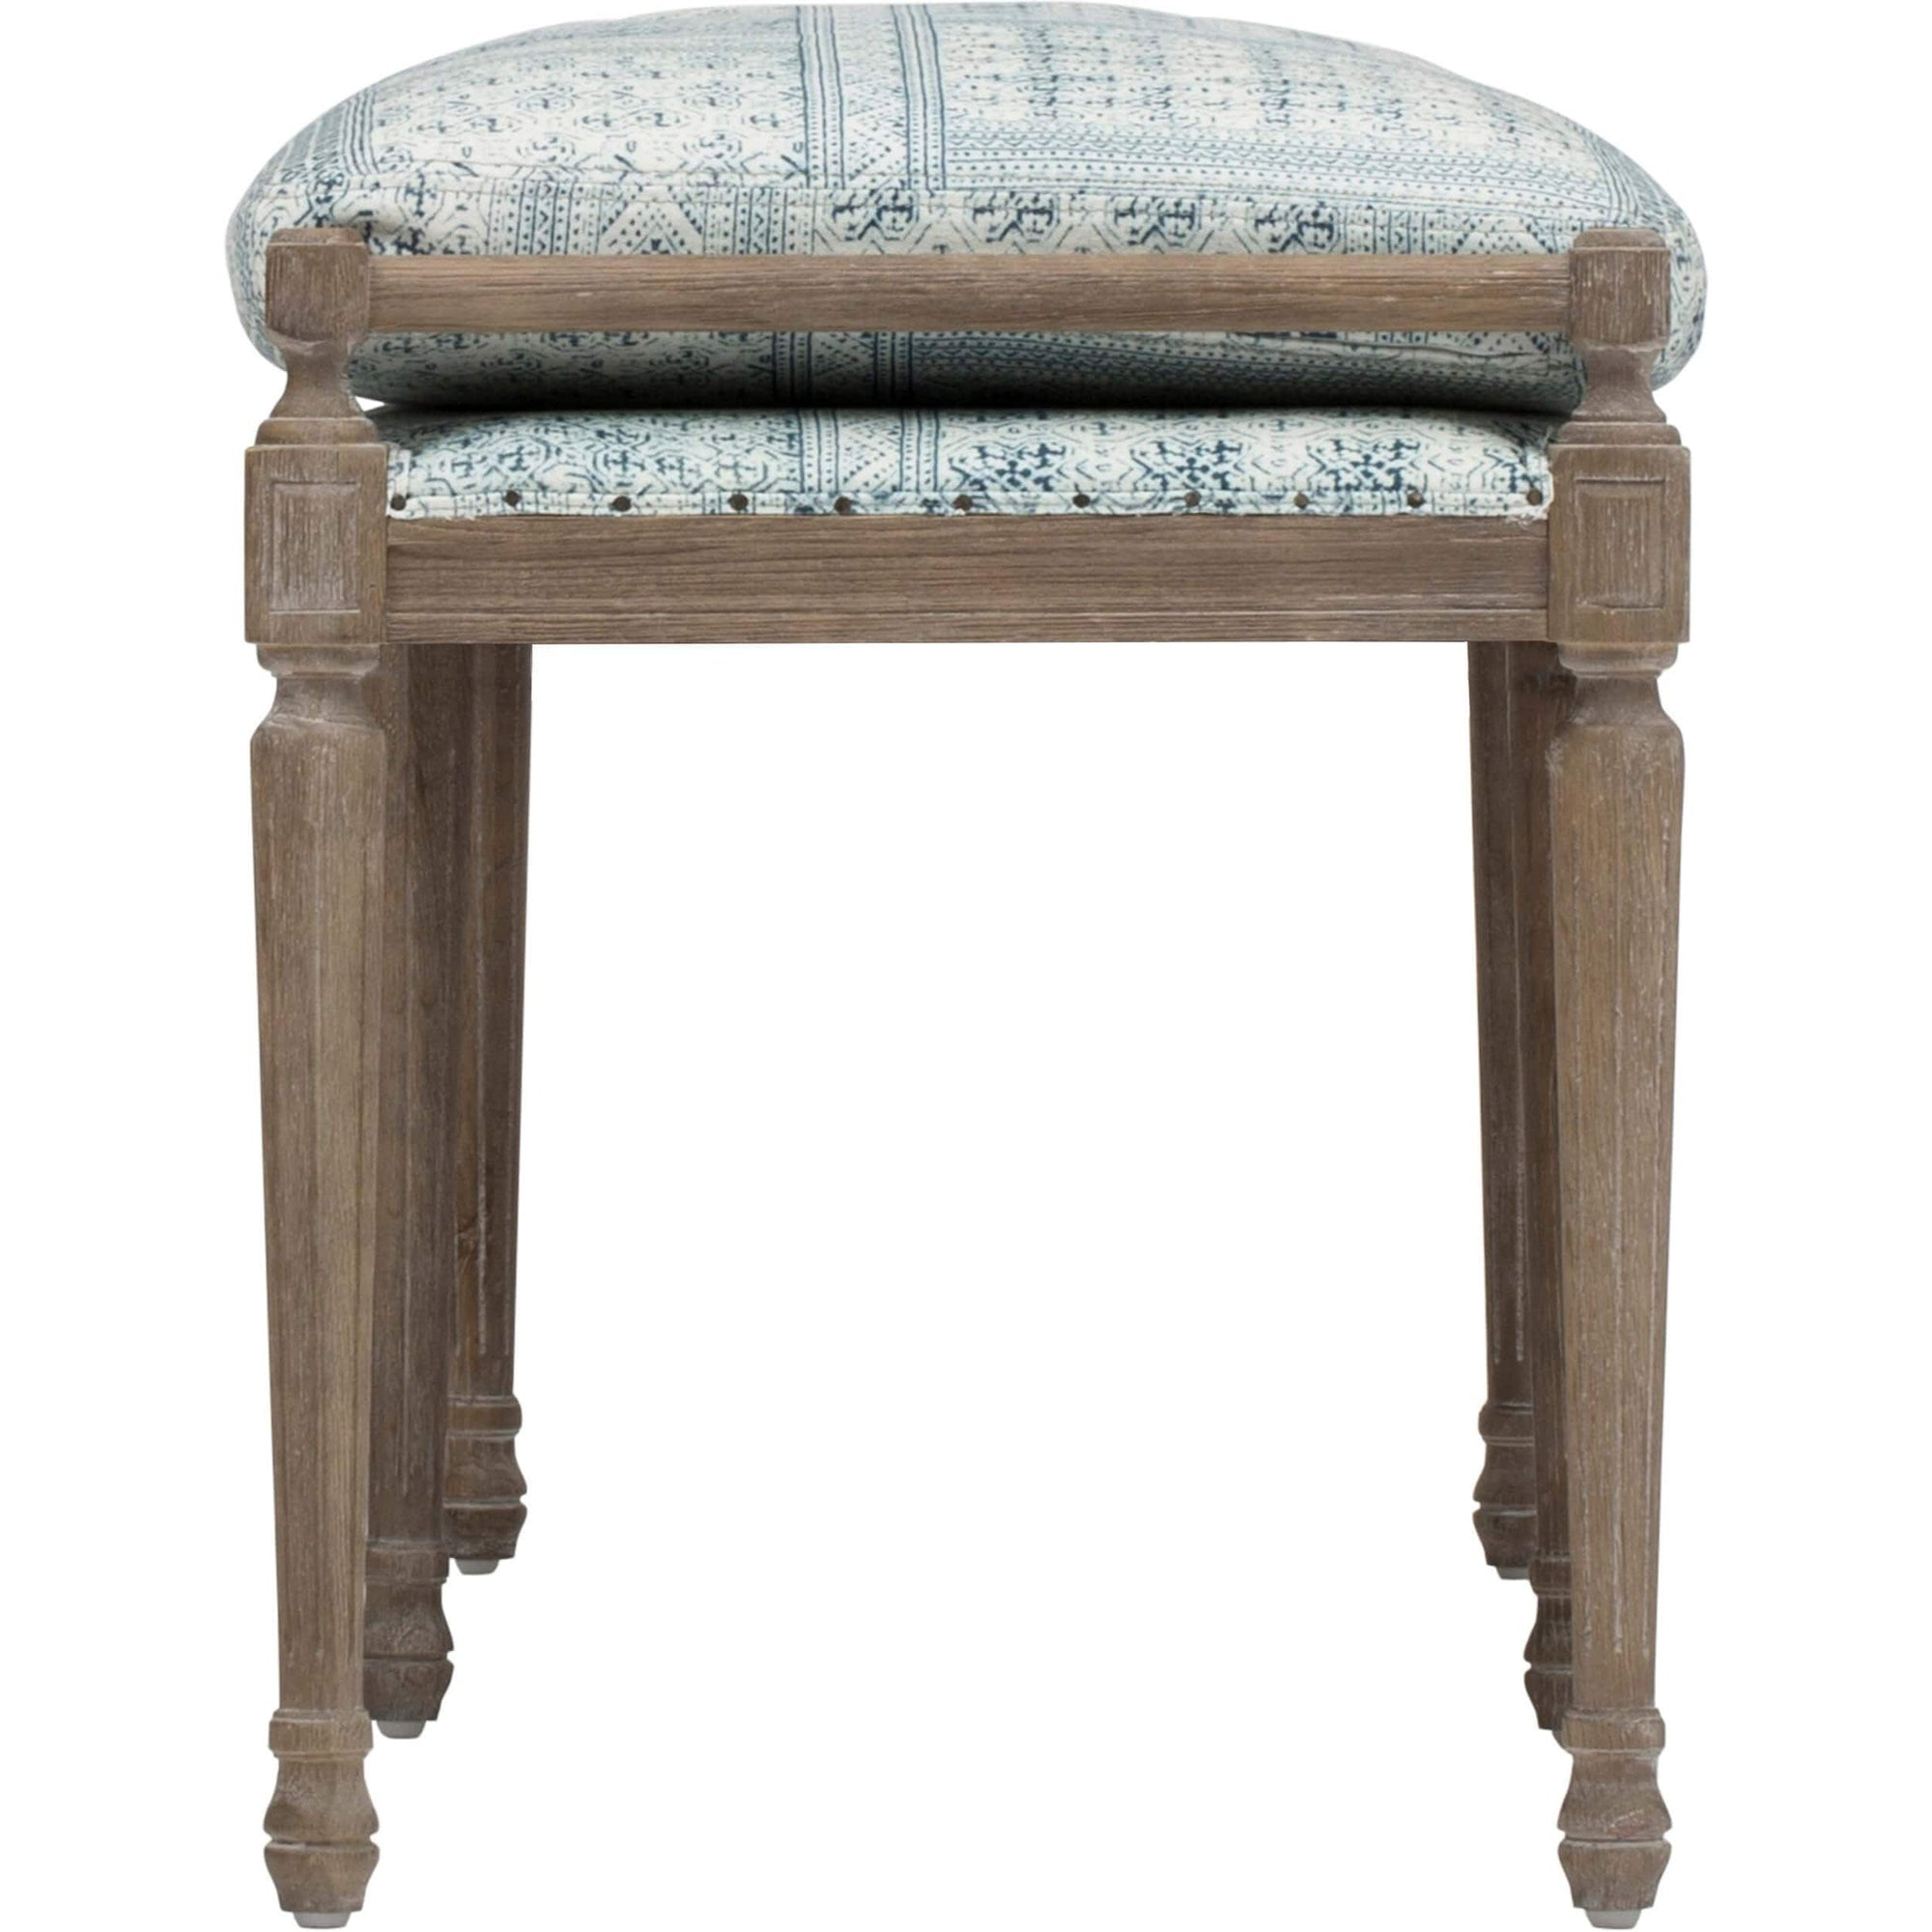 Amazing Lucille 80 Dining Bench Batik Indigo High Fashion Home Pabps2019 Chair Design Images Pabps2019Com